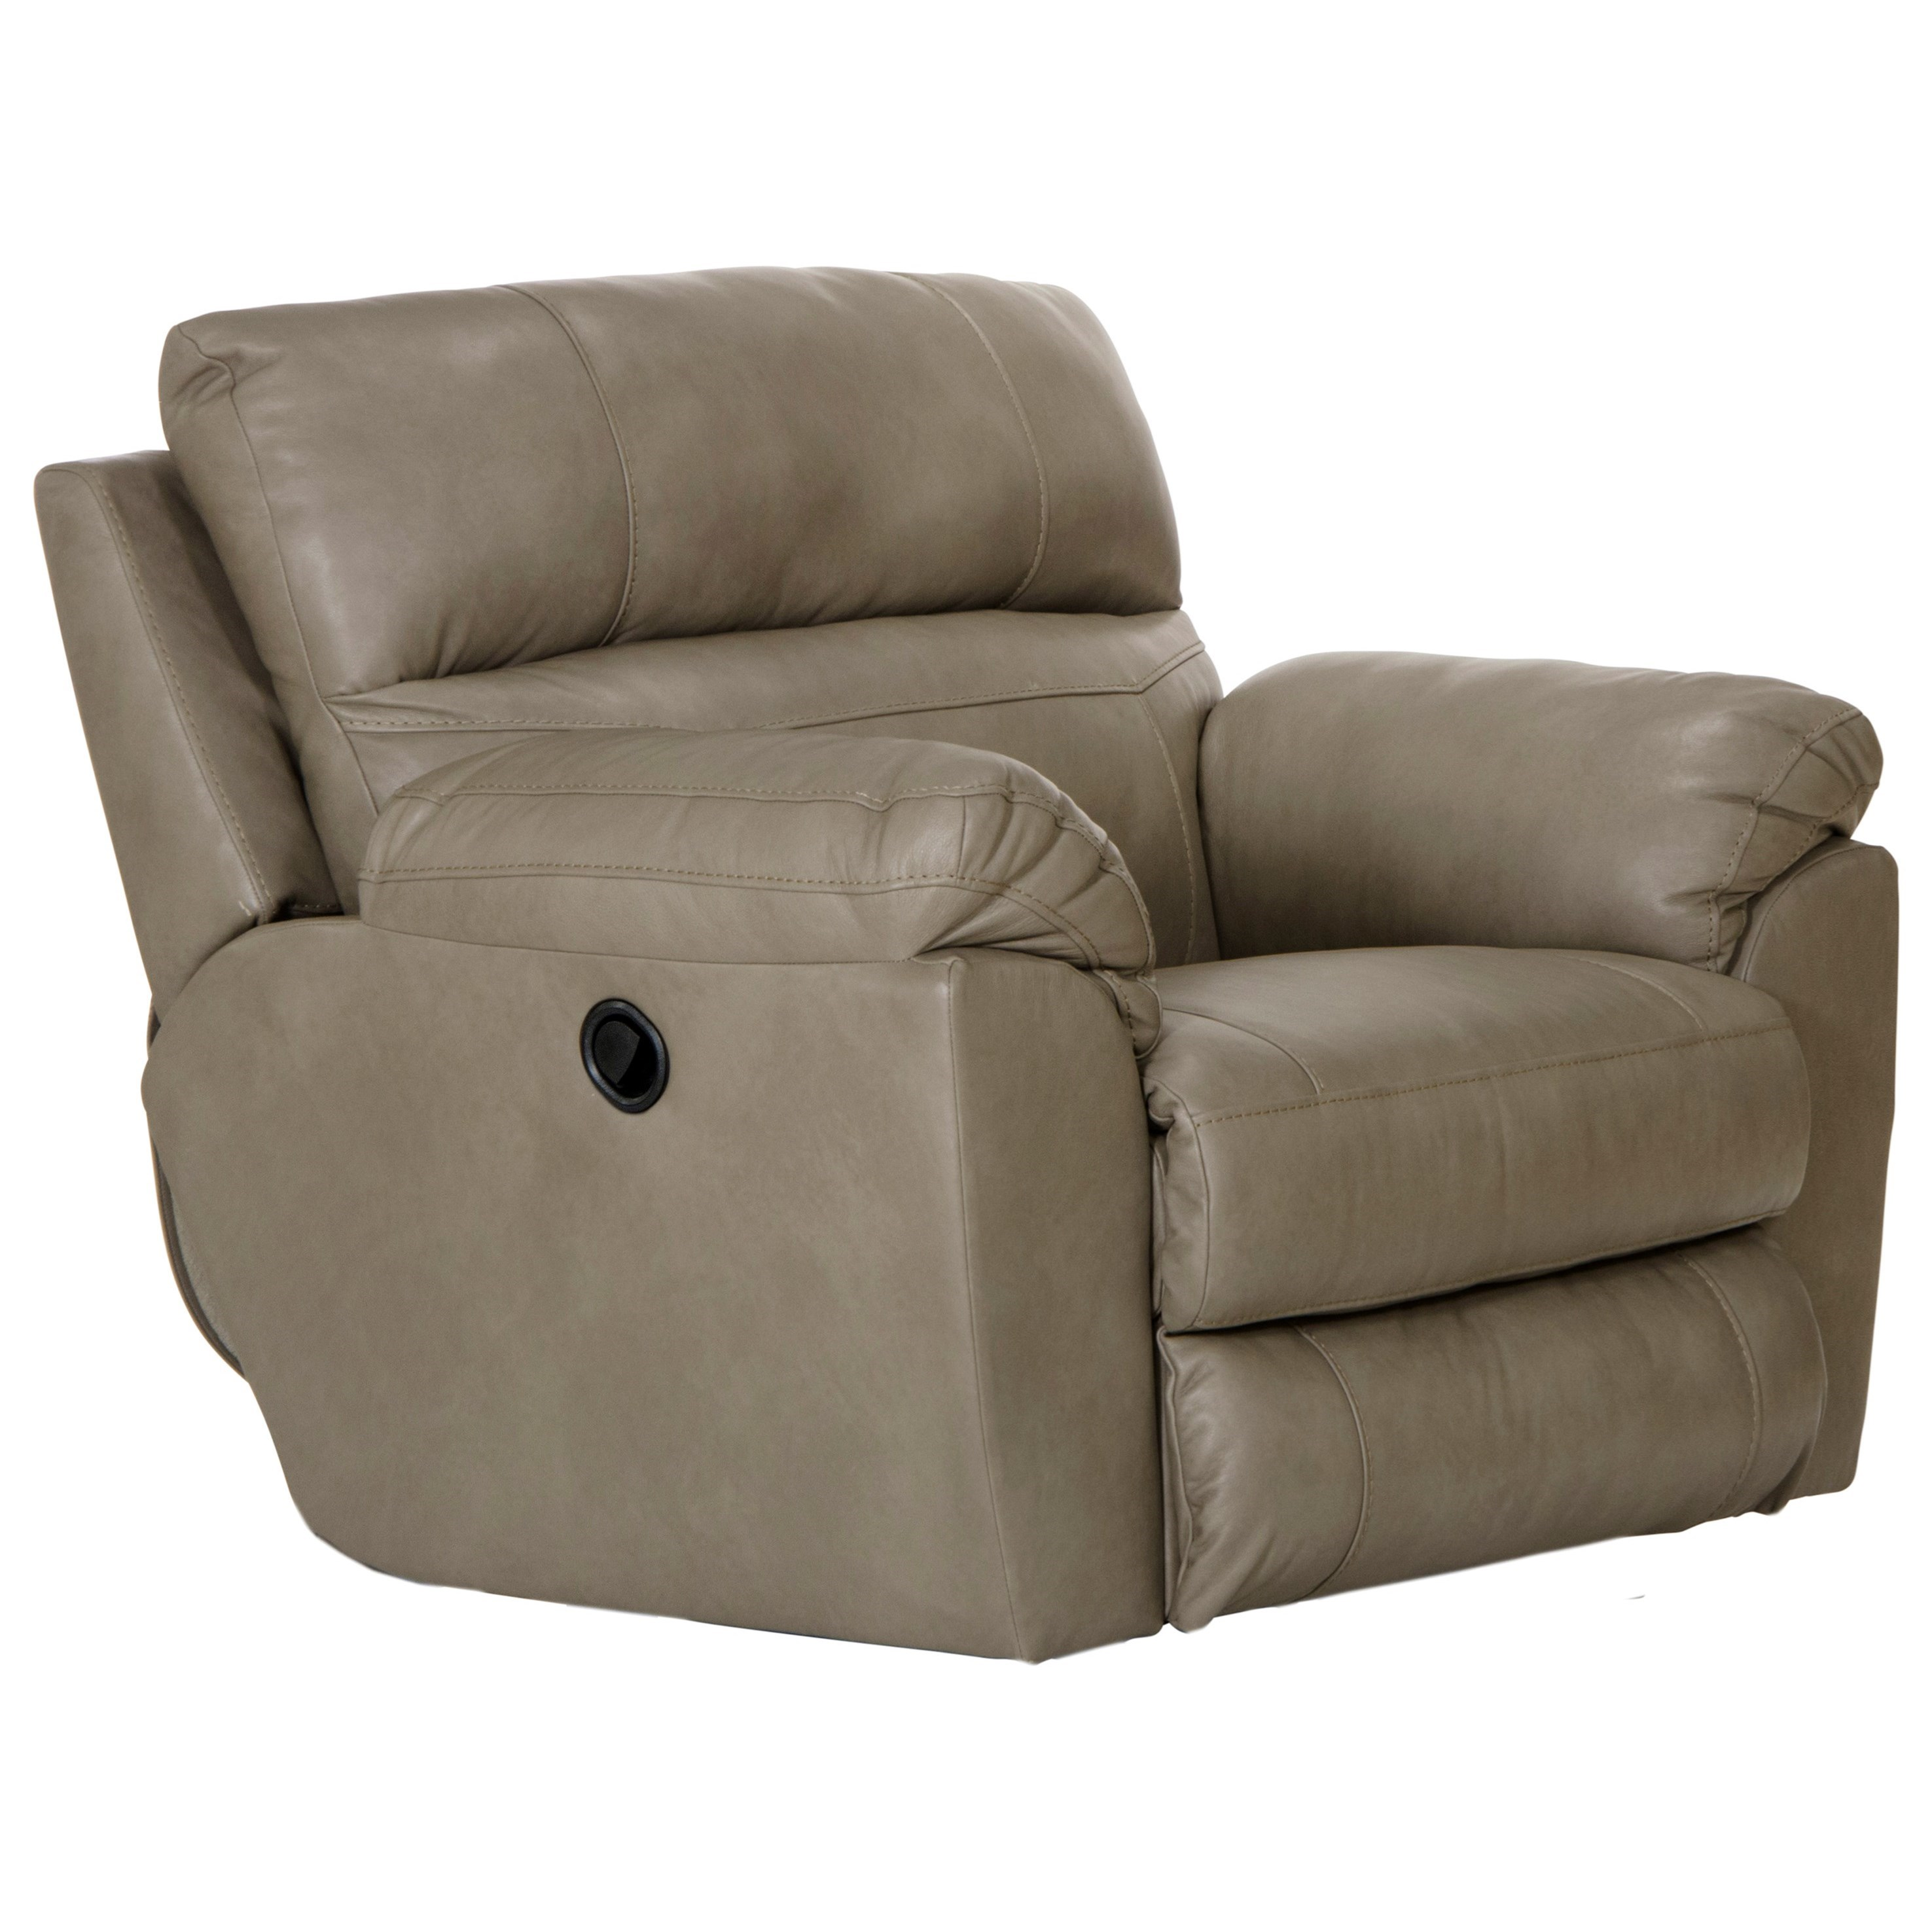 Costa Power Lay Flat Recliner by Catnapper at Northeast Factory Direct